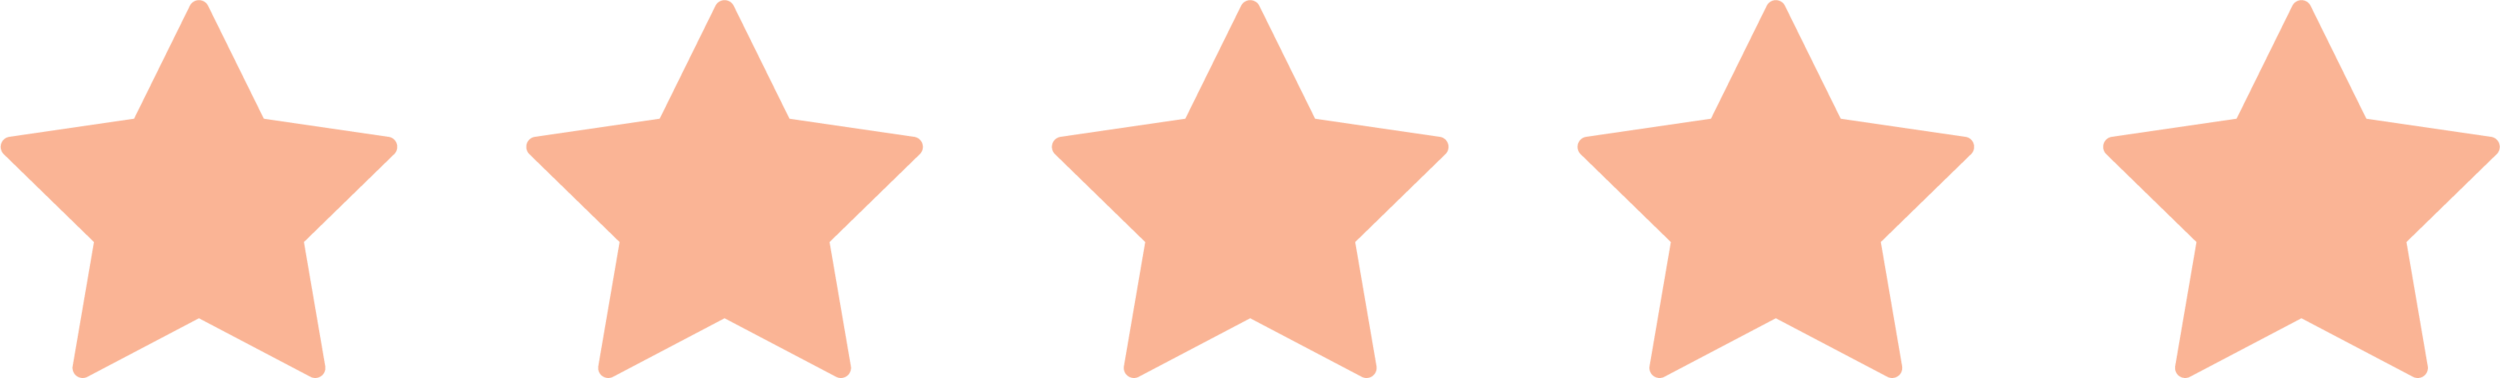 customer-review-5-star-points-of-measure.png